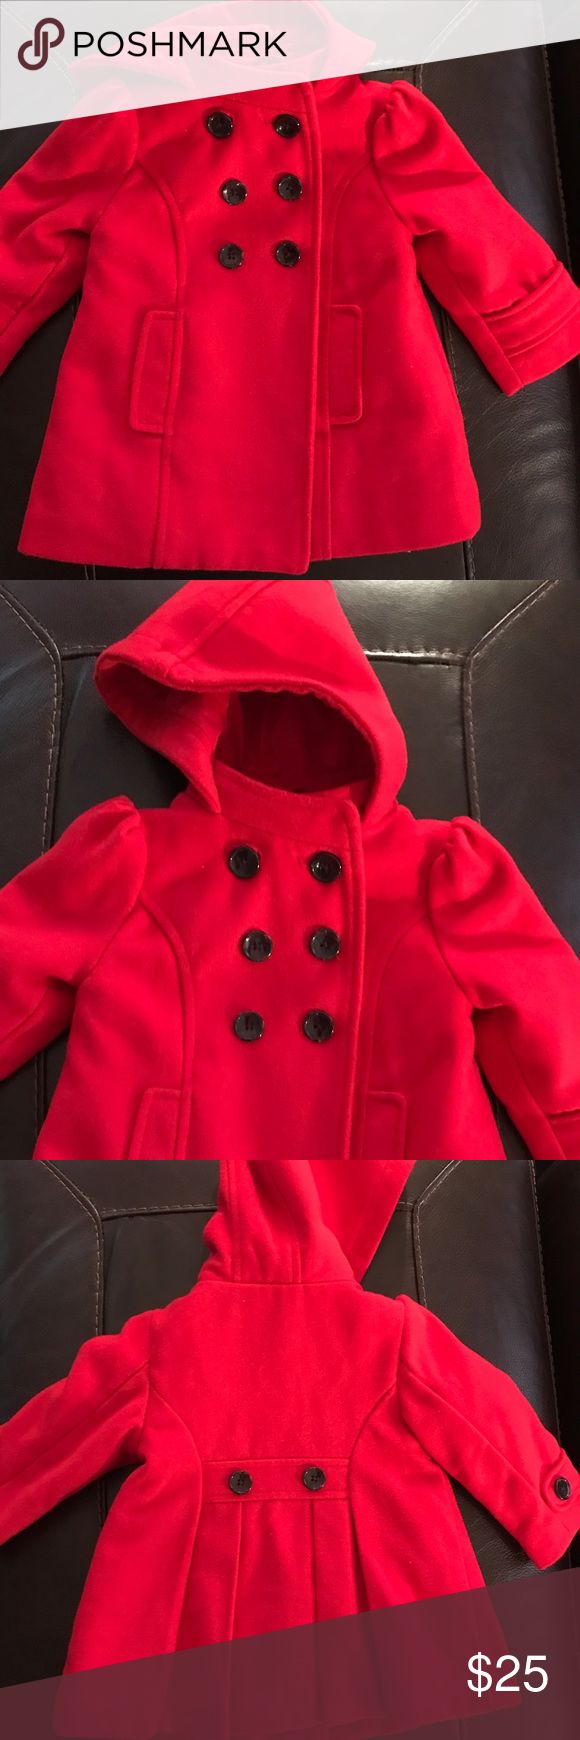 Old Navy Pea Coat - Excellent Condition  12-18mth Old Navy Pea Coat - Excellent Condition  12-18month This coat was worn a few times, looks brand new!! Old Navy Jackets & Coats Pea Coats